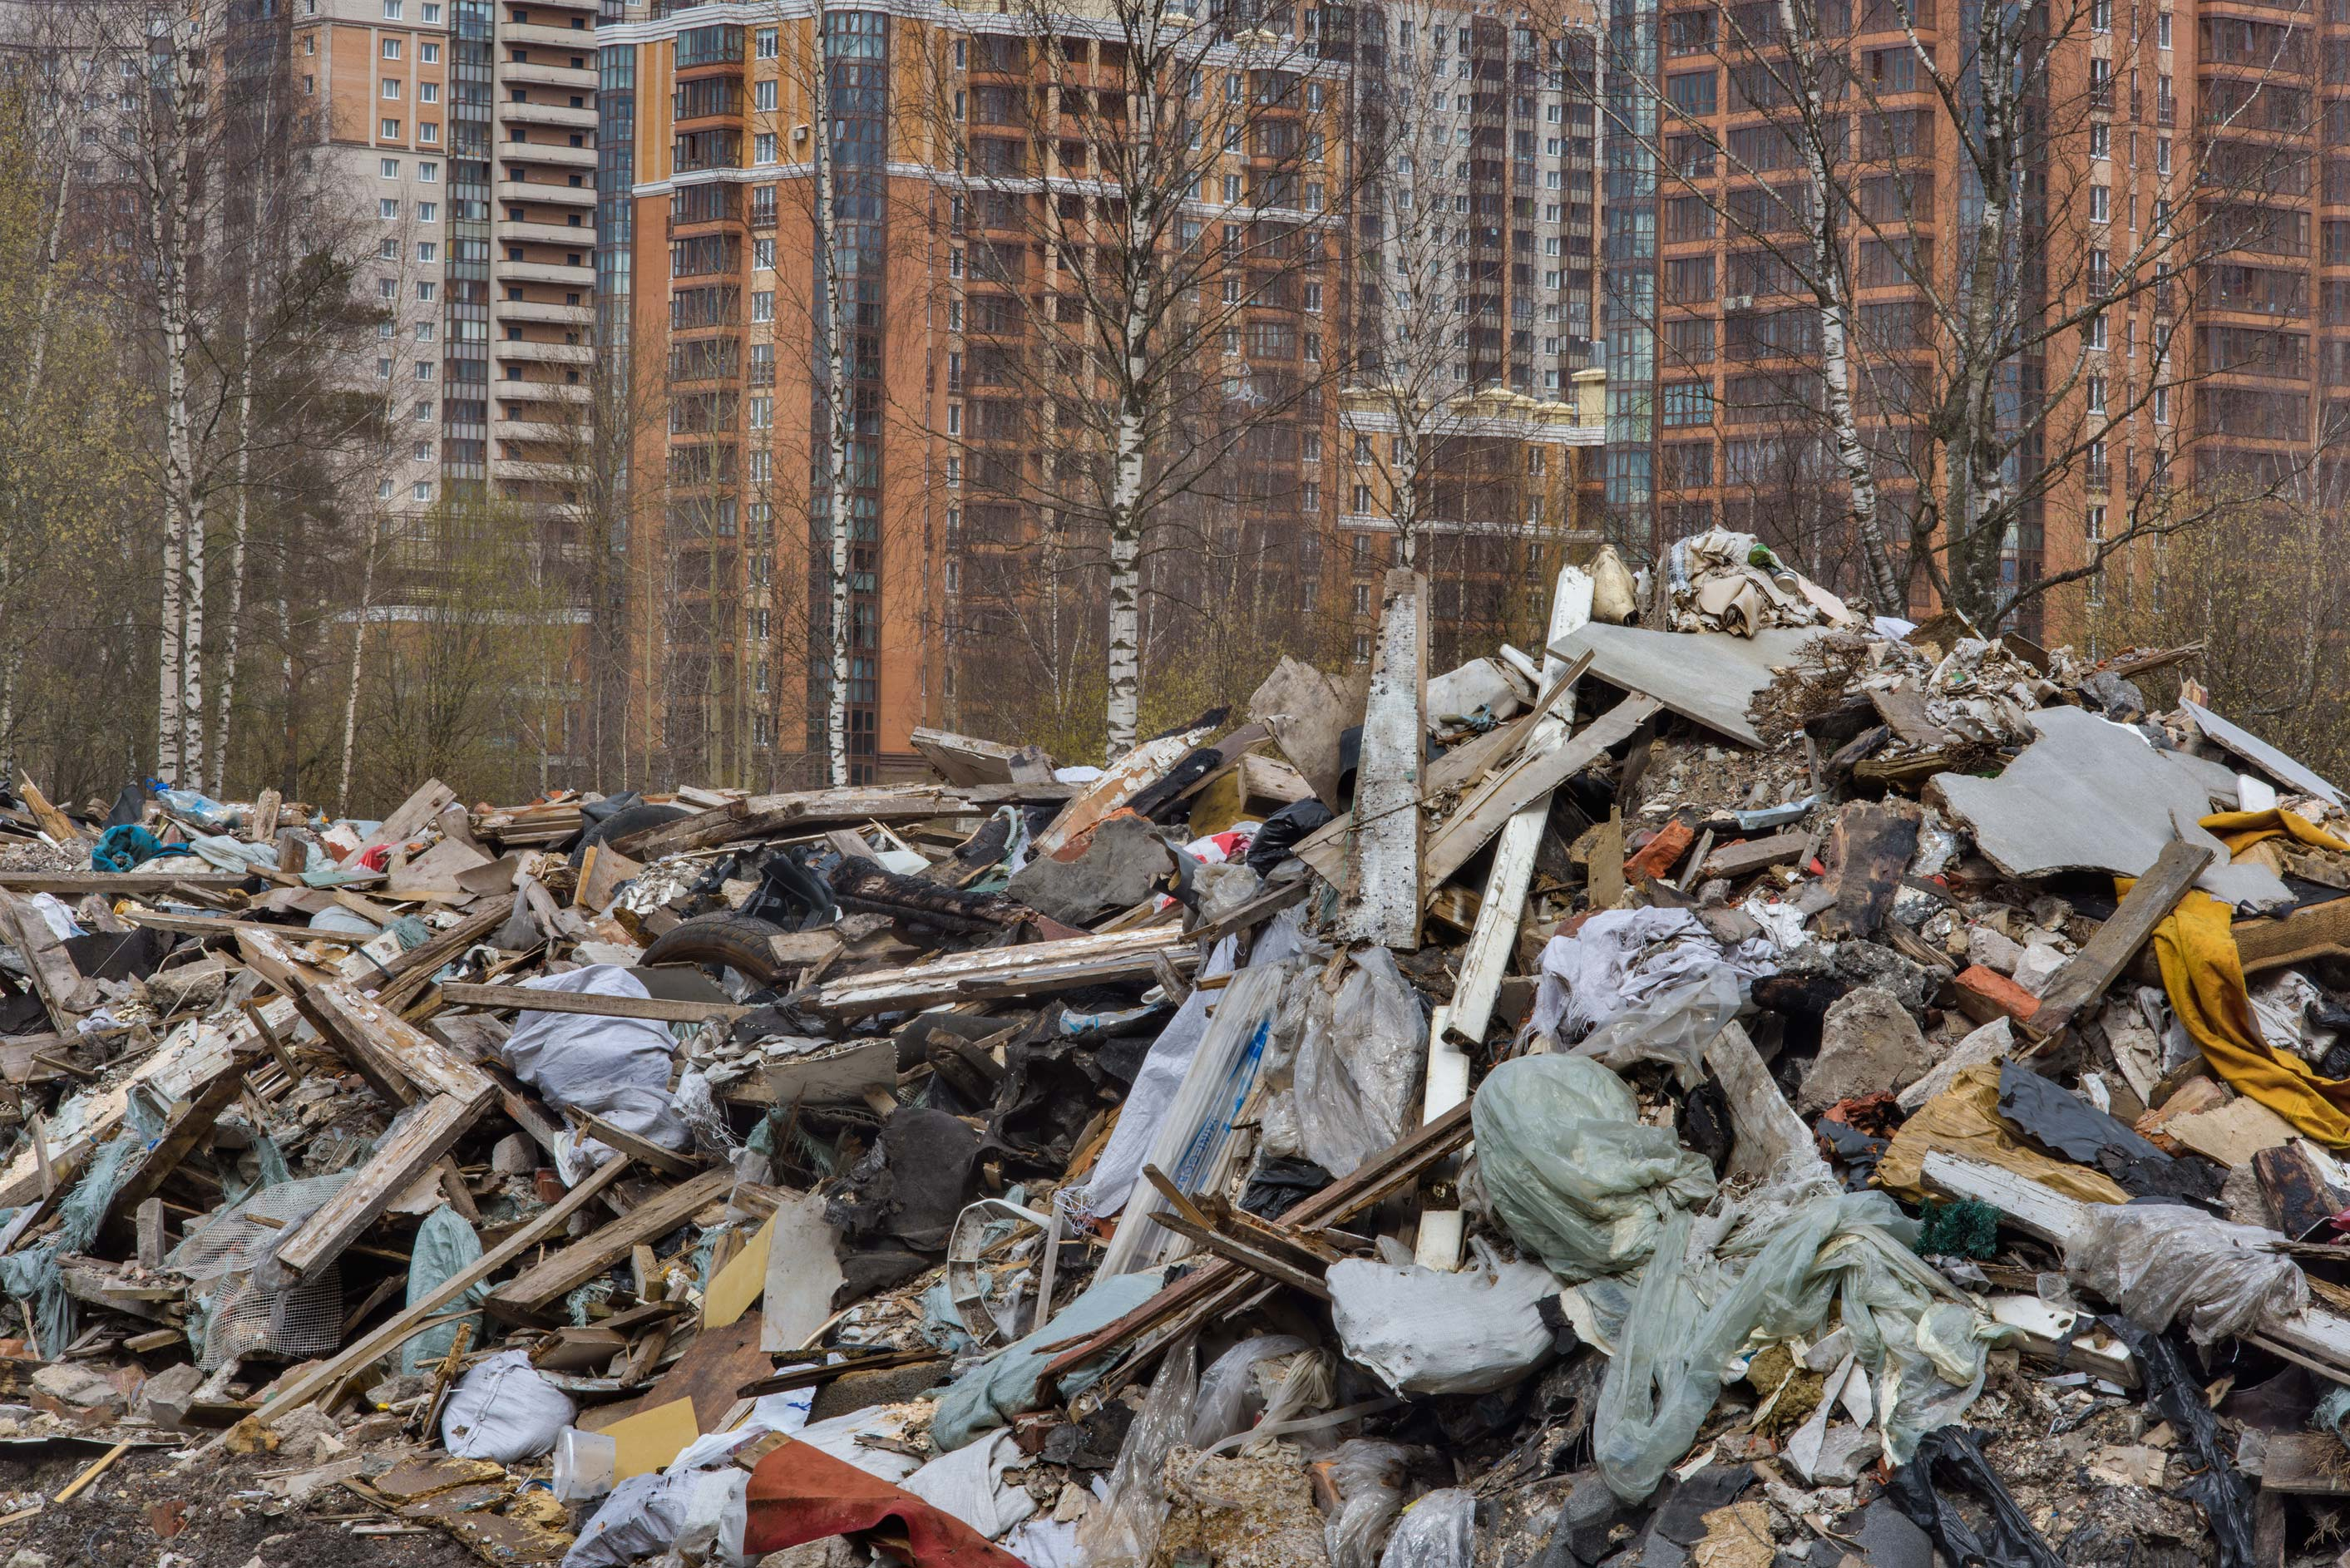 Piles of trash from former garages in area of...Sosnovka Park. St.Petersburg, Russia